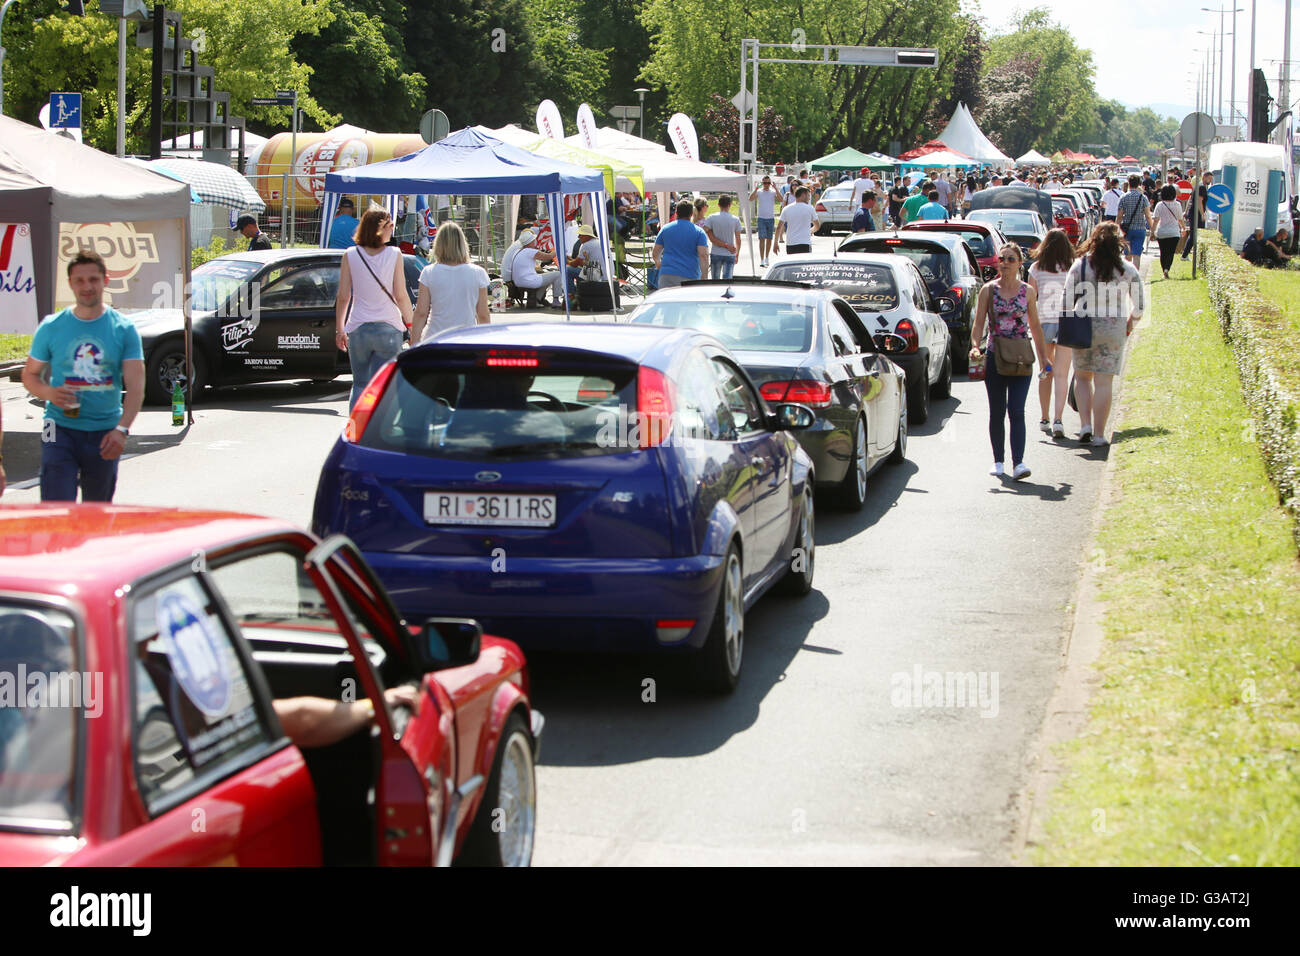 People sightseeing lined up cars waiting for the race at Fast and furious street race at Avenue Dubrovnik in Zagreb, Stock Photo